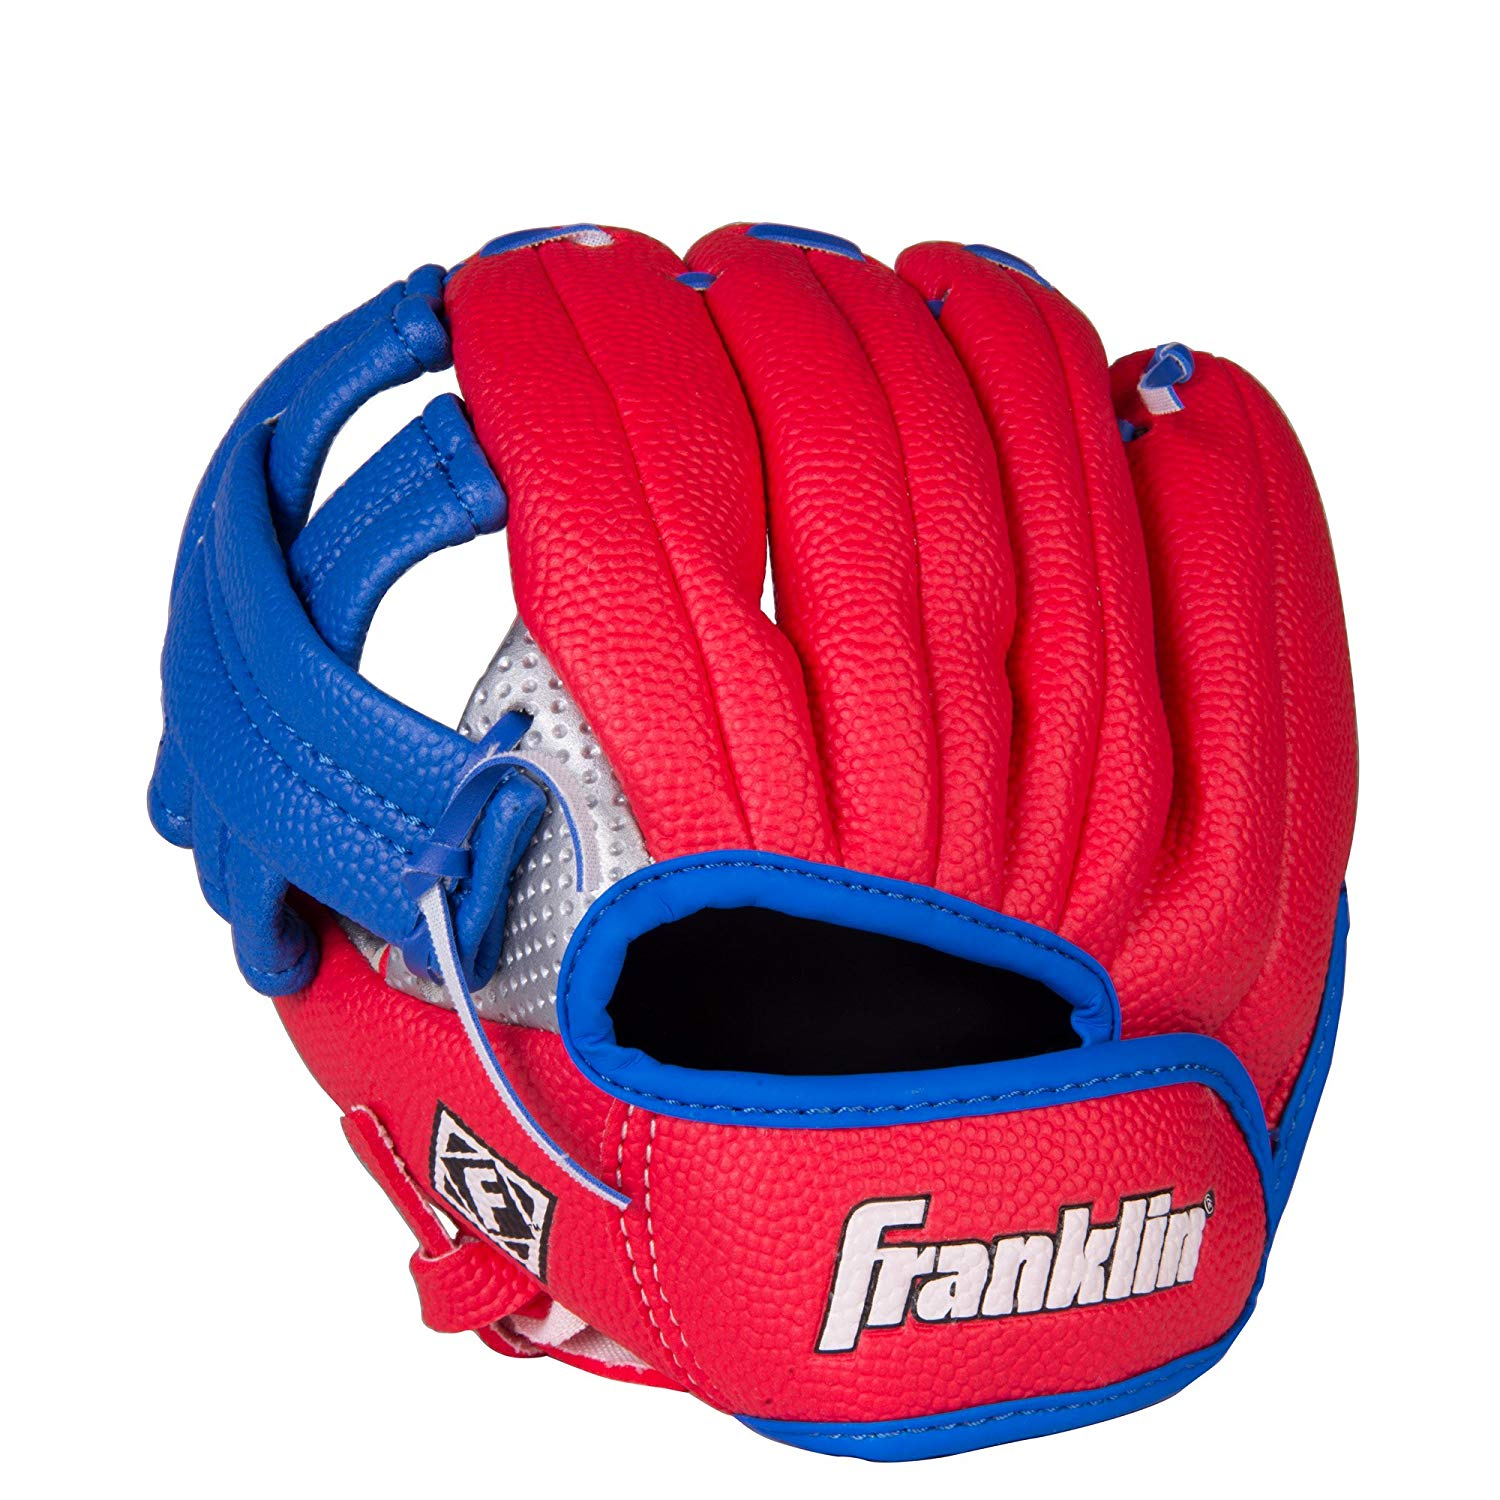 Franklin Youth Batting Glove